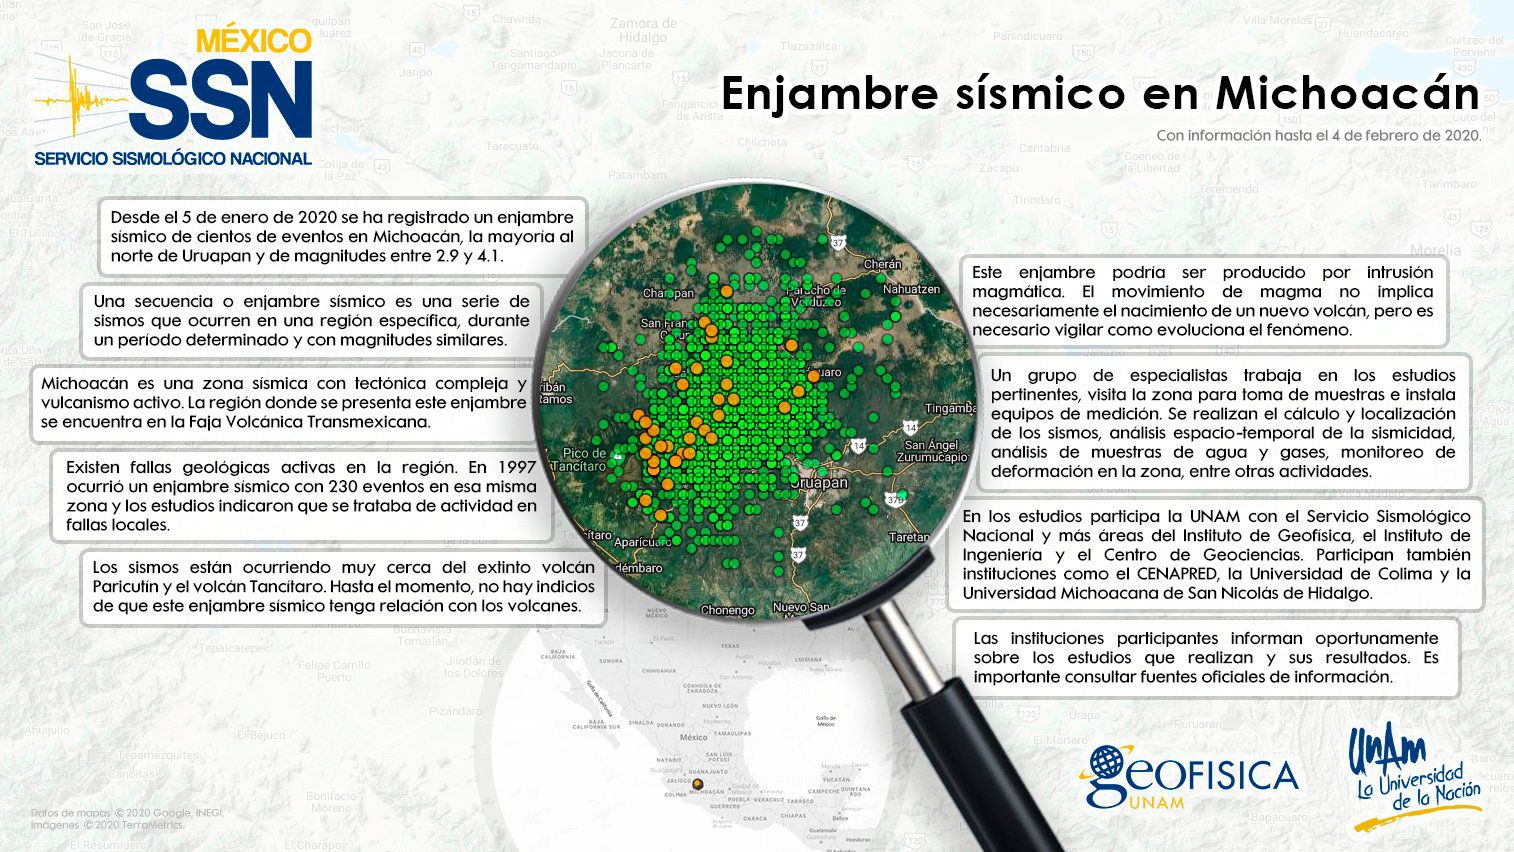 Seismic swarm at Michoacán - Doc. SSN / UNAM 04.02.2020 - one click to enlarge